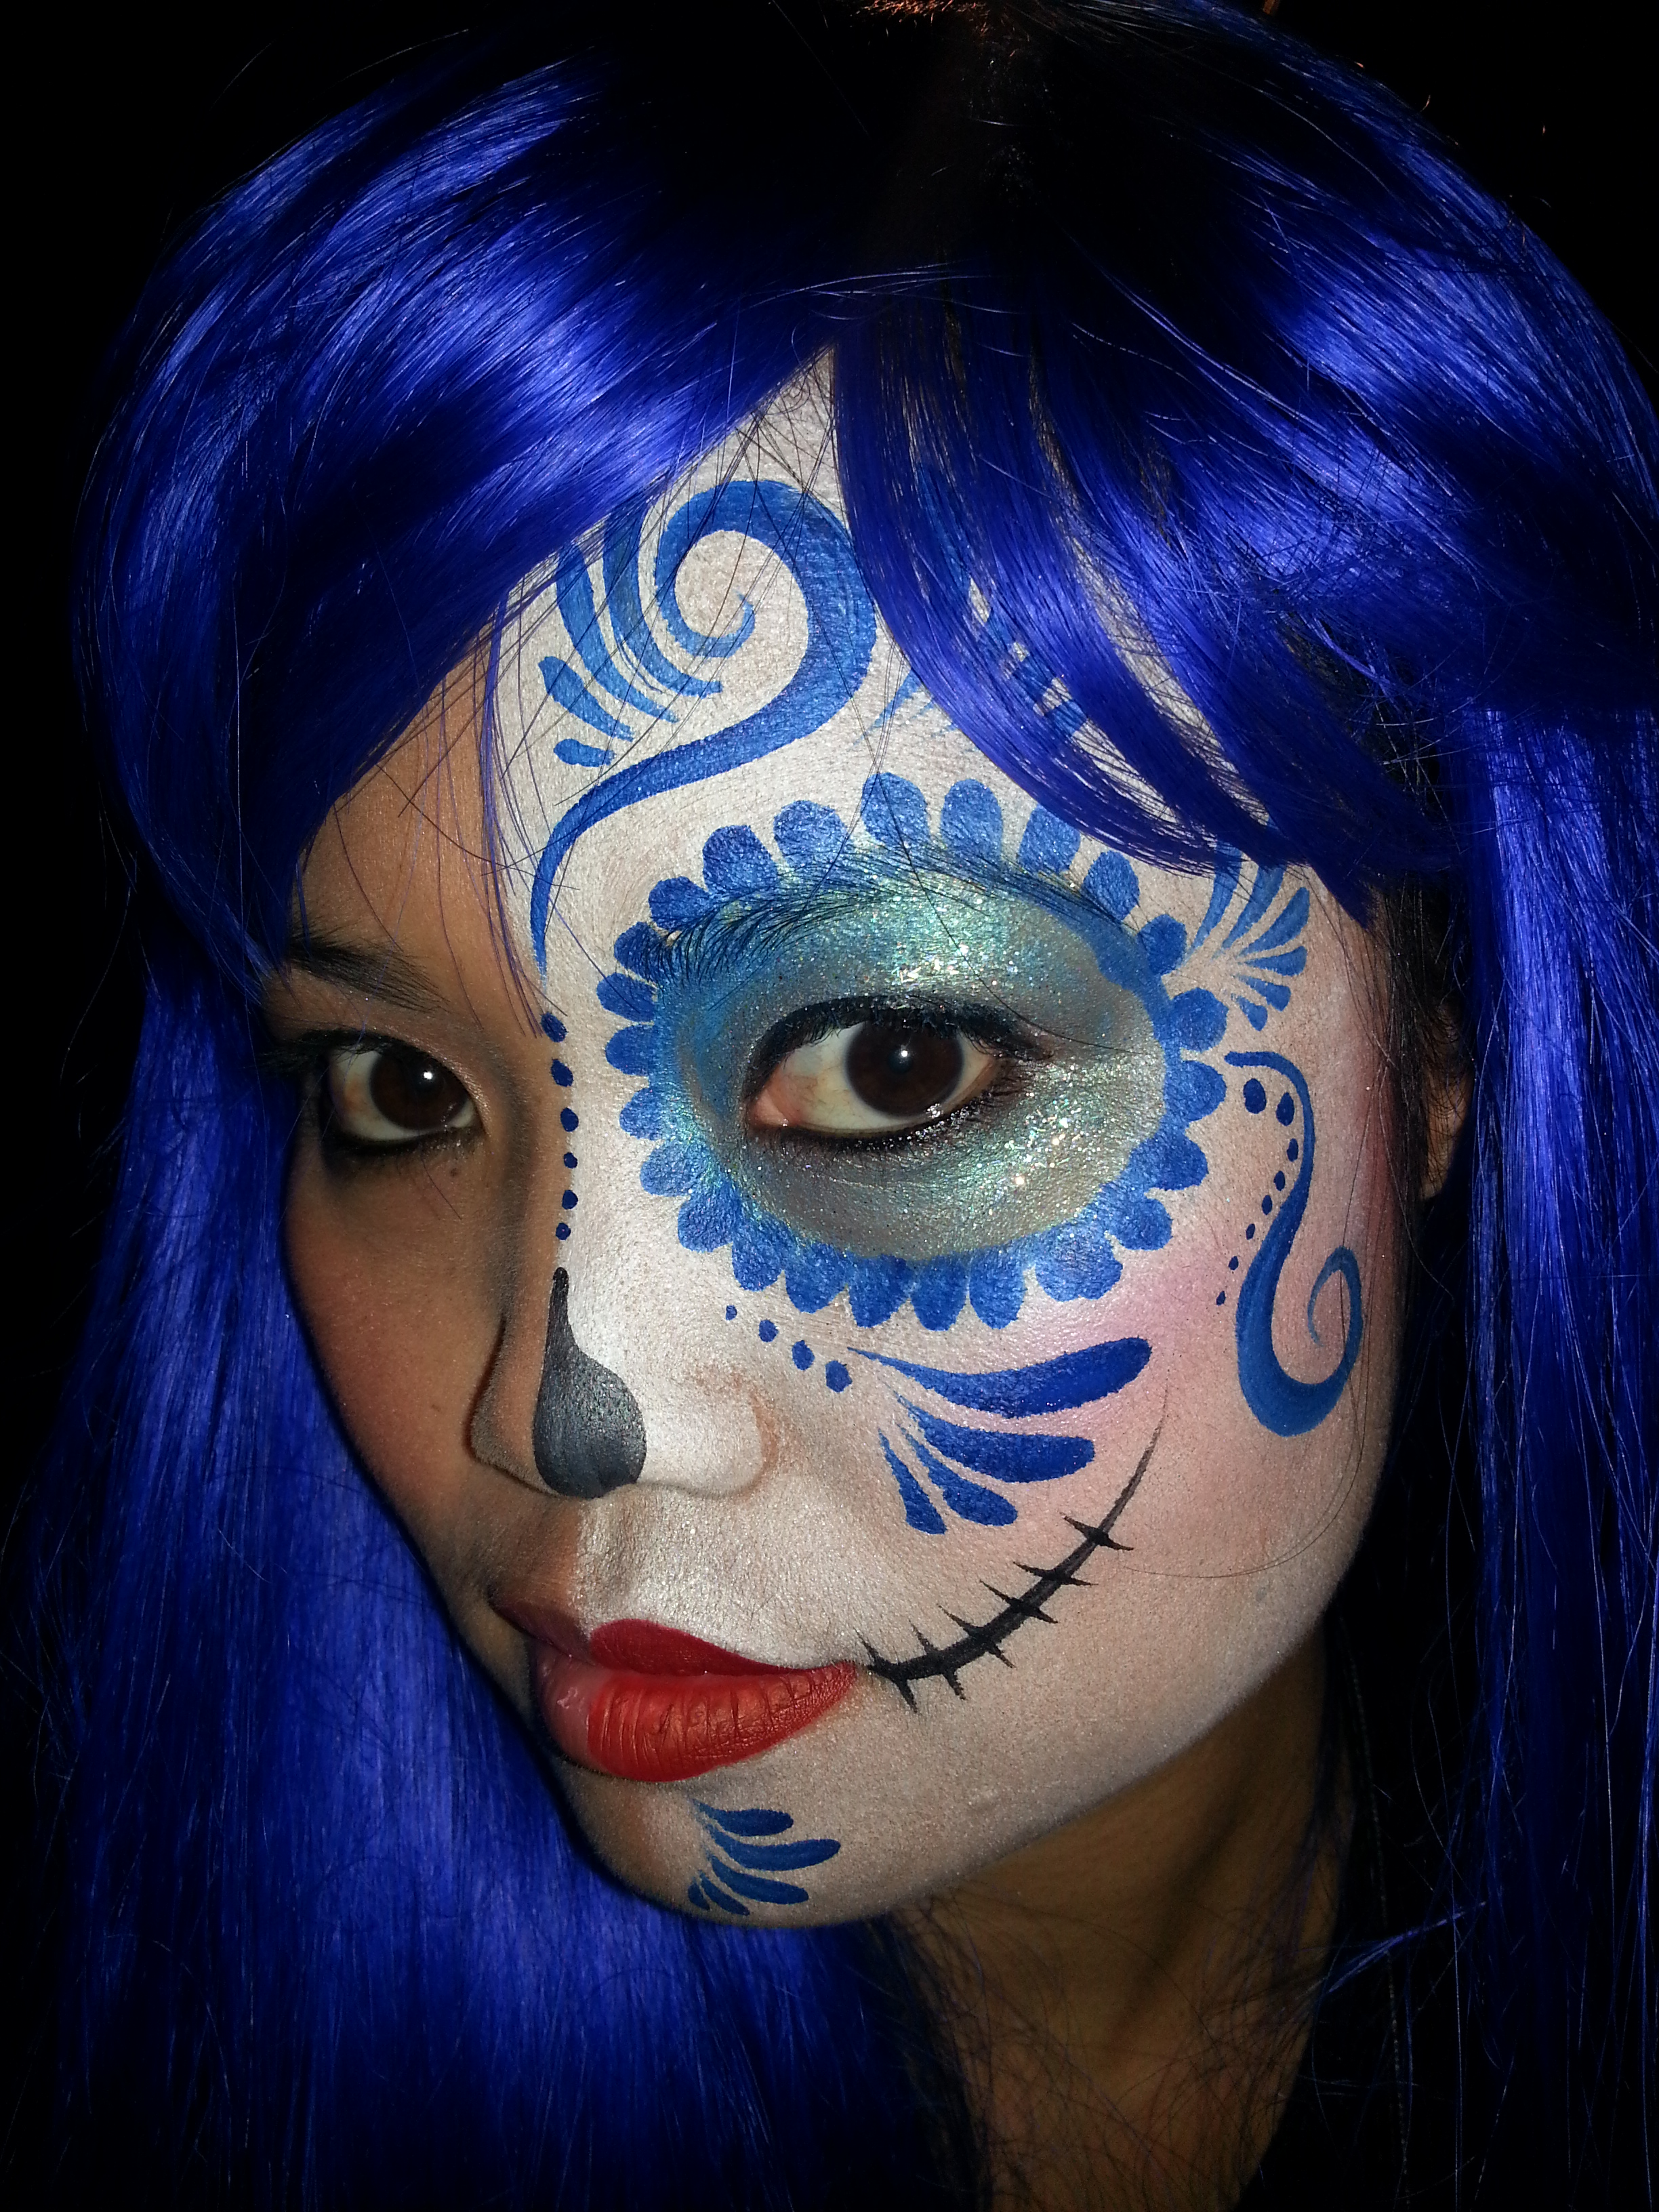 Face Paint The Story Of Makeup Amazon Co Uk Lisa: 301 Moved Permanently